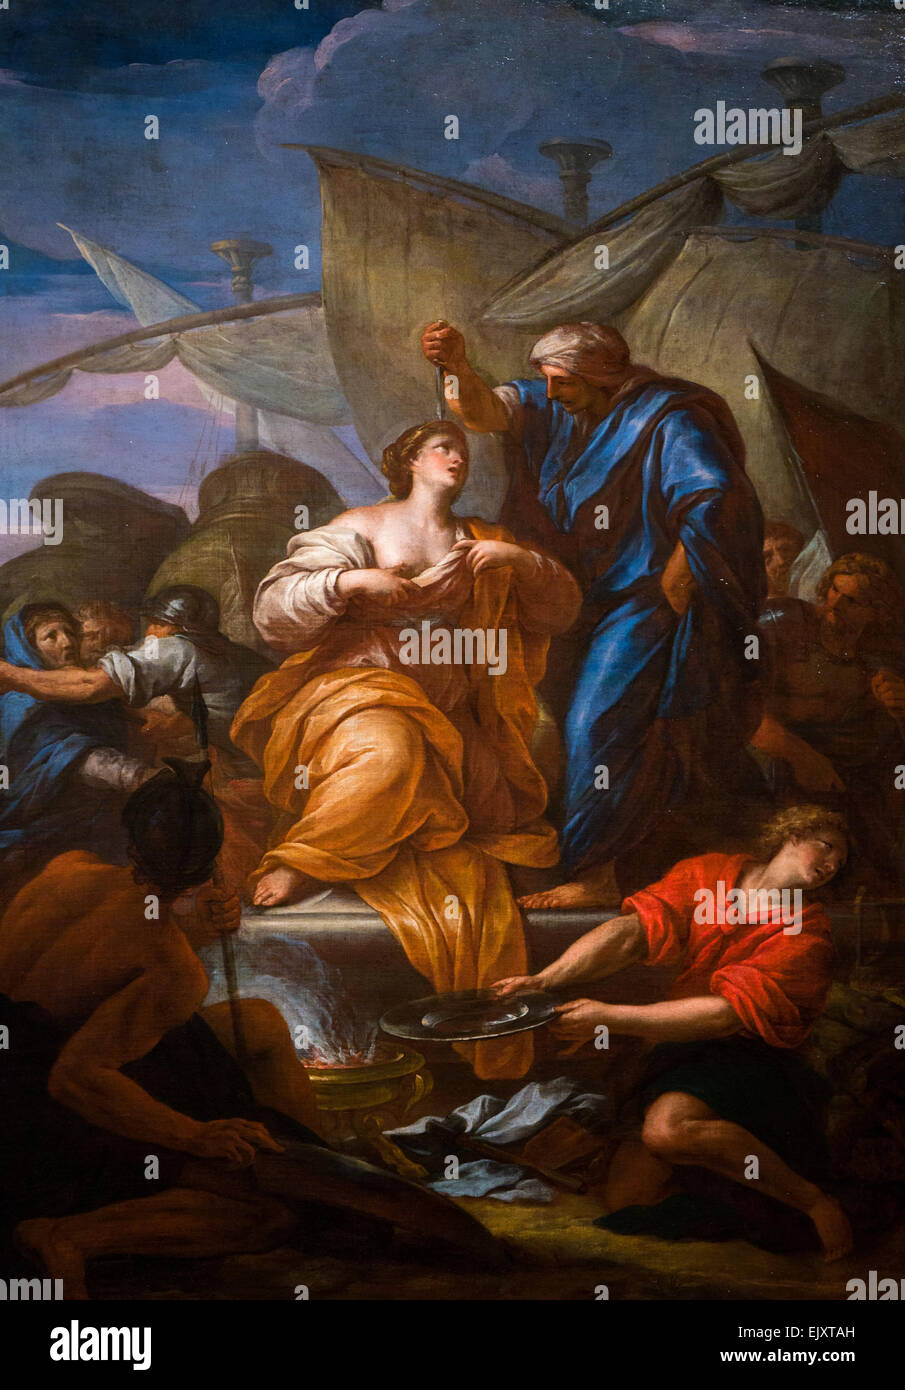 ActiveMuseum_0006012.jpg / The sacrifice of Polyxena, inspired by Ovid's Metamorphoses, recounts how after the - Stock Image